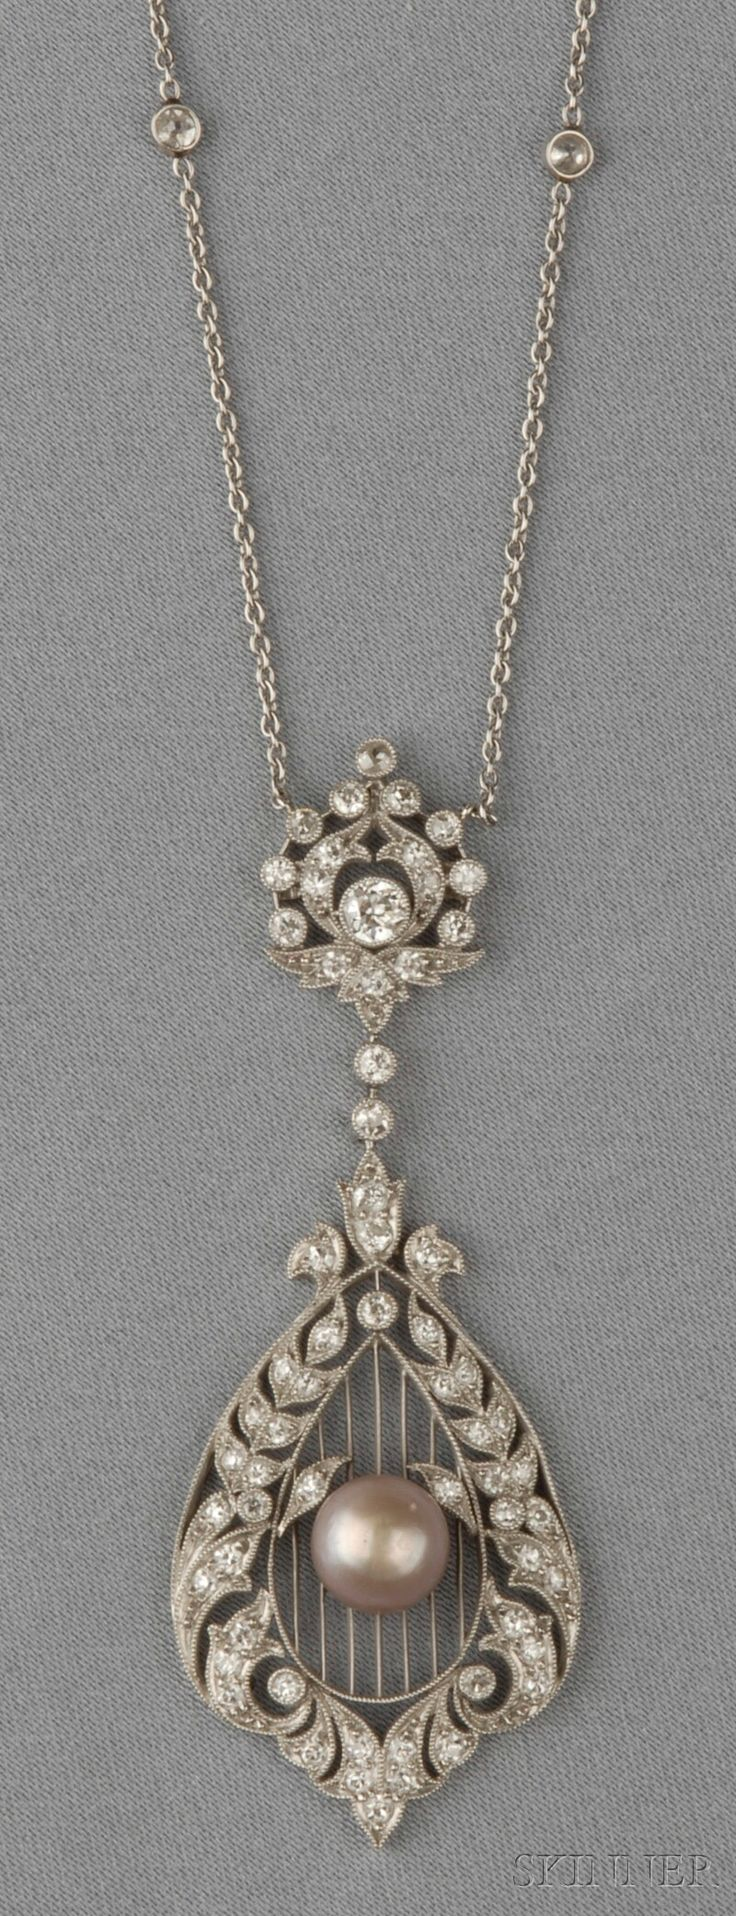 Edwardian Platinum, Natural Pearl, and Diamond Pendant